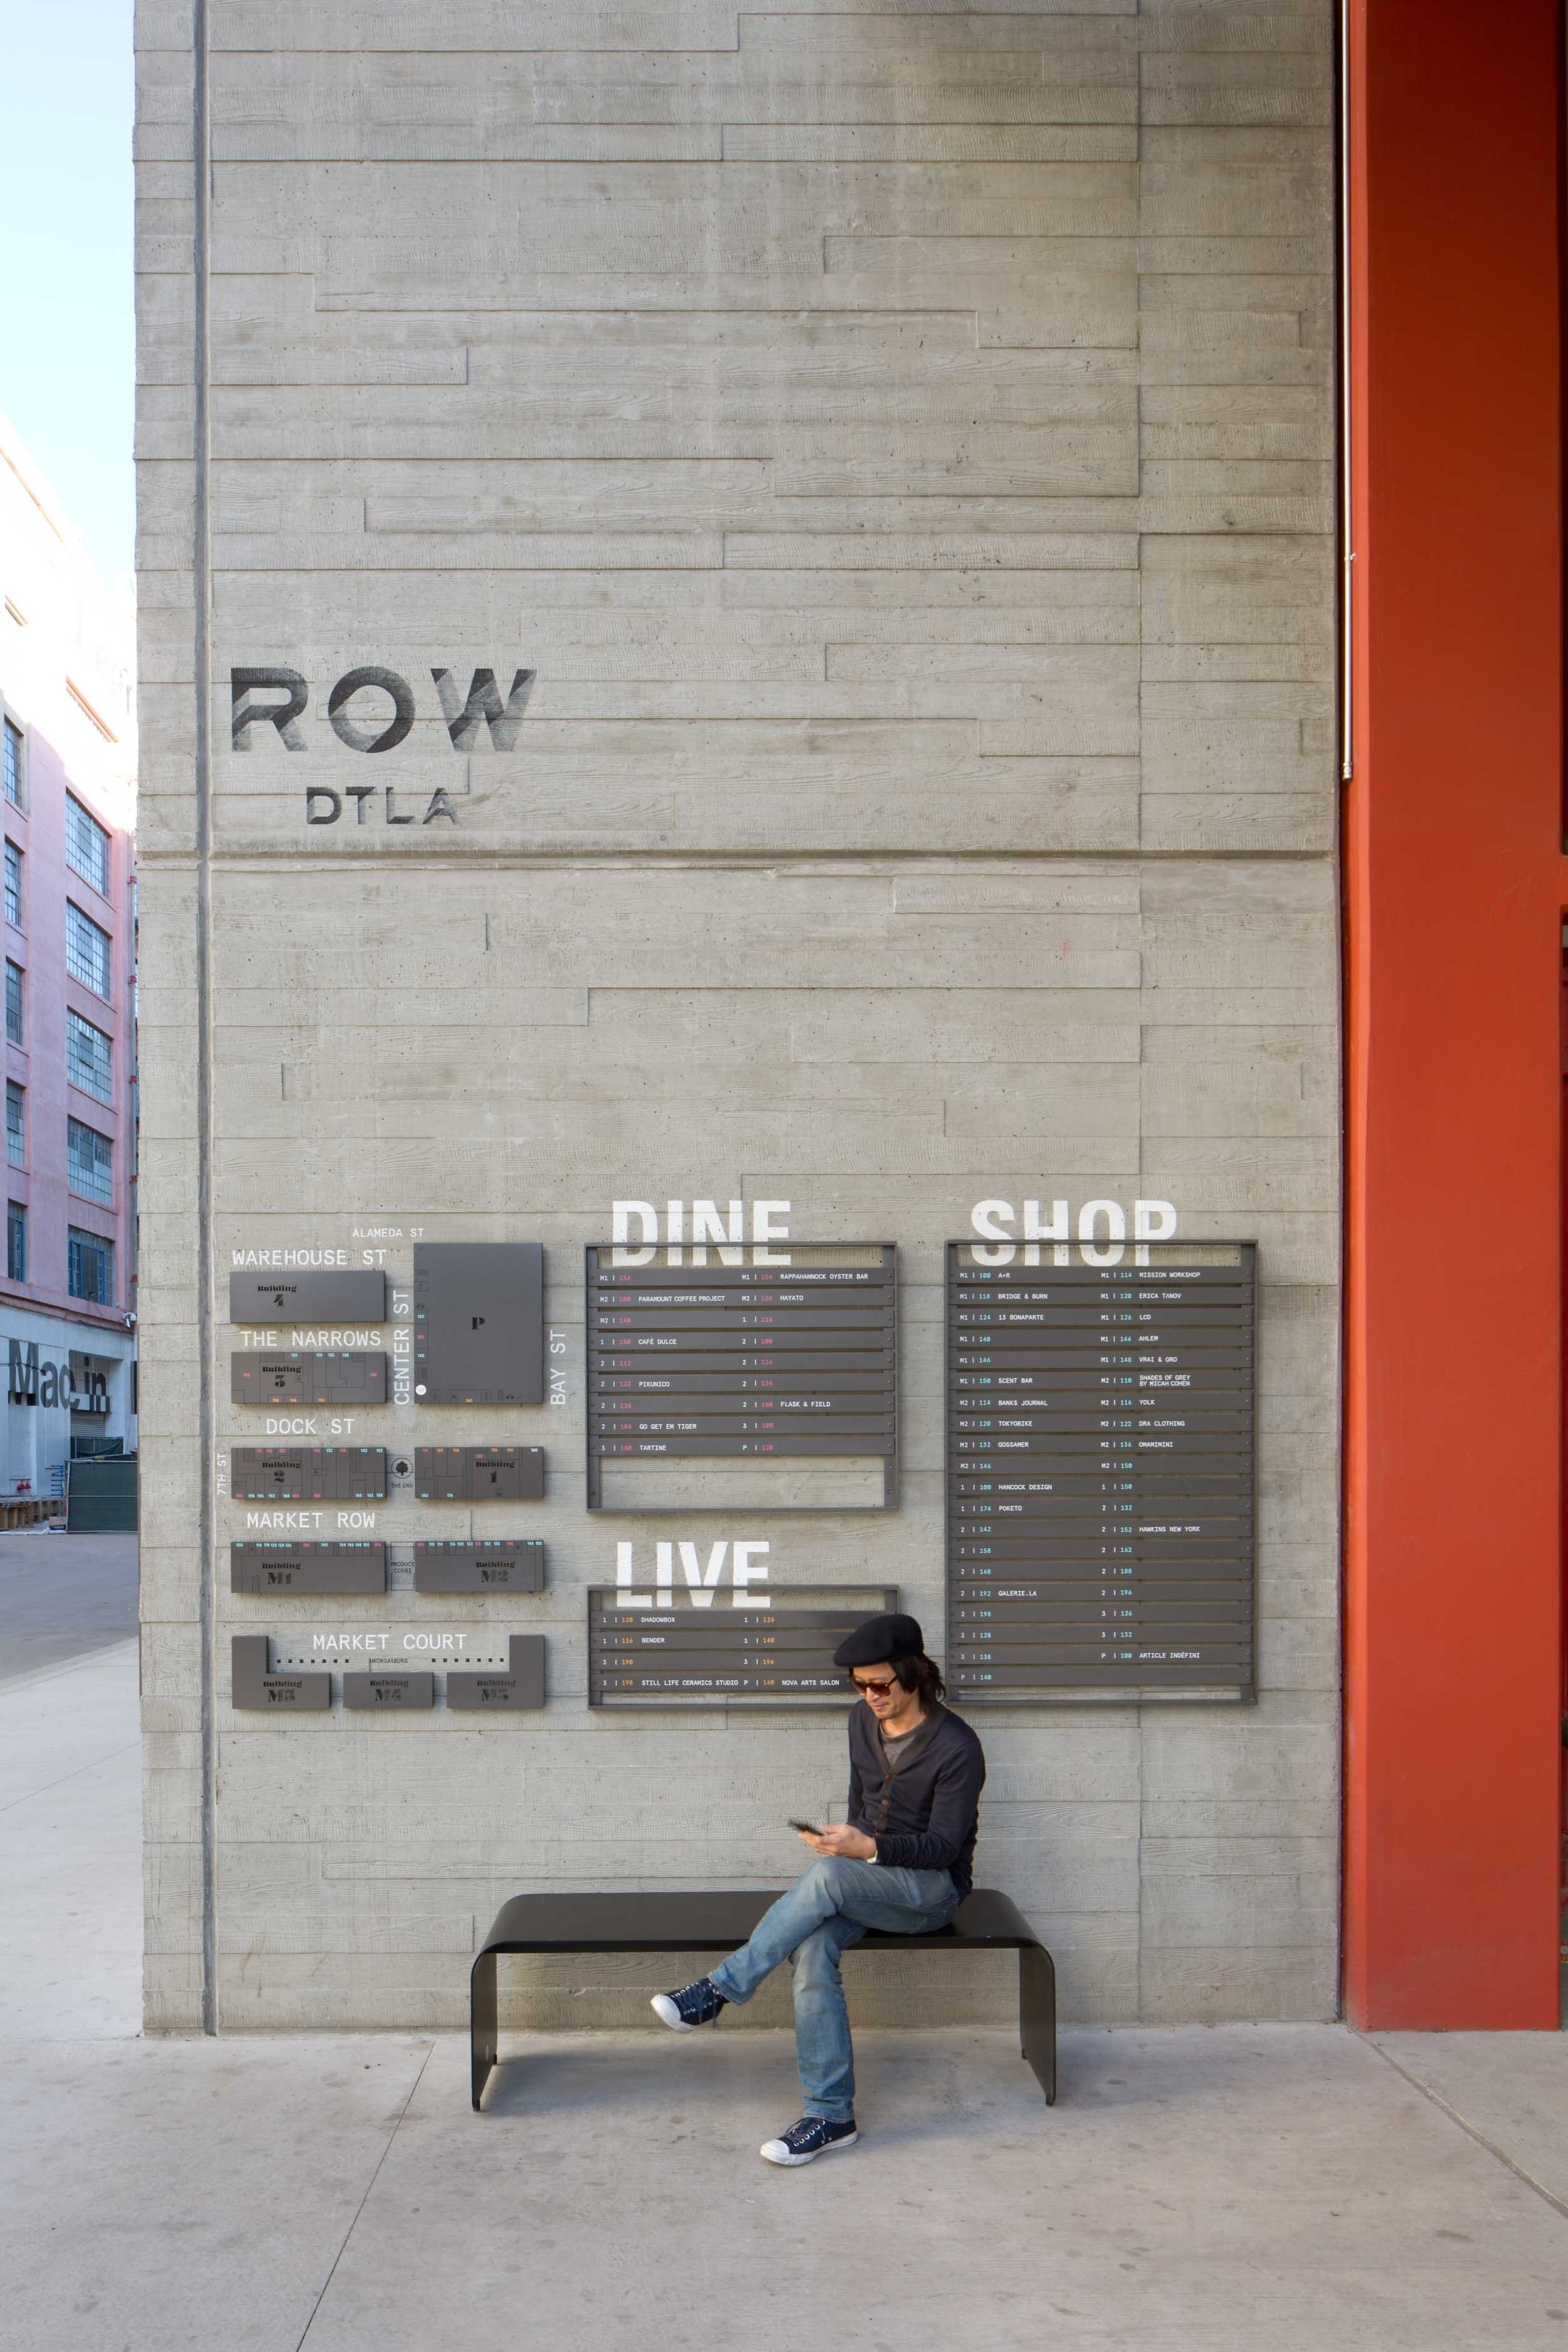 woman sitting on a bench against a cement wall with a ROW map above her head